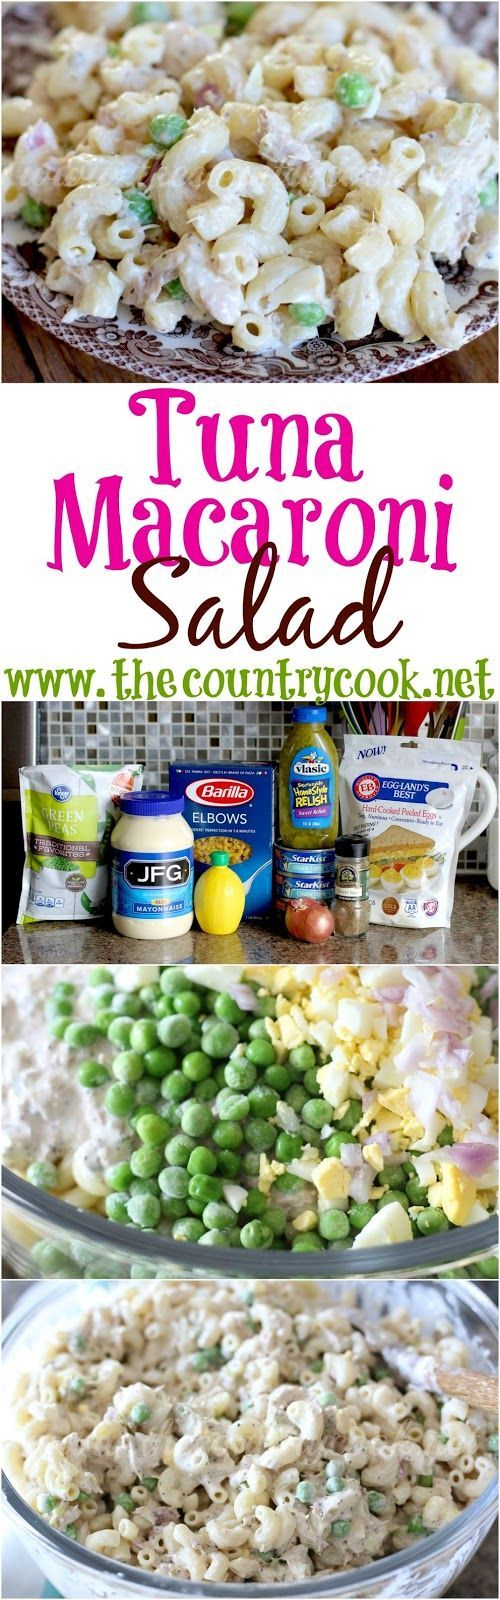 Tuna Macaroni Salad recipe from The Country Cook. Delicious flavors with lots of filling protein! Everyone loves this! A great way to kick off a healthy new year!